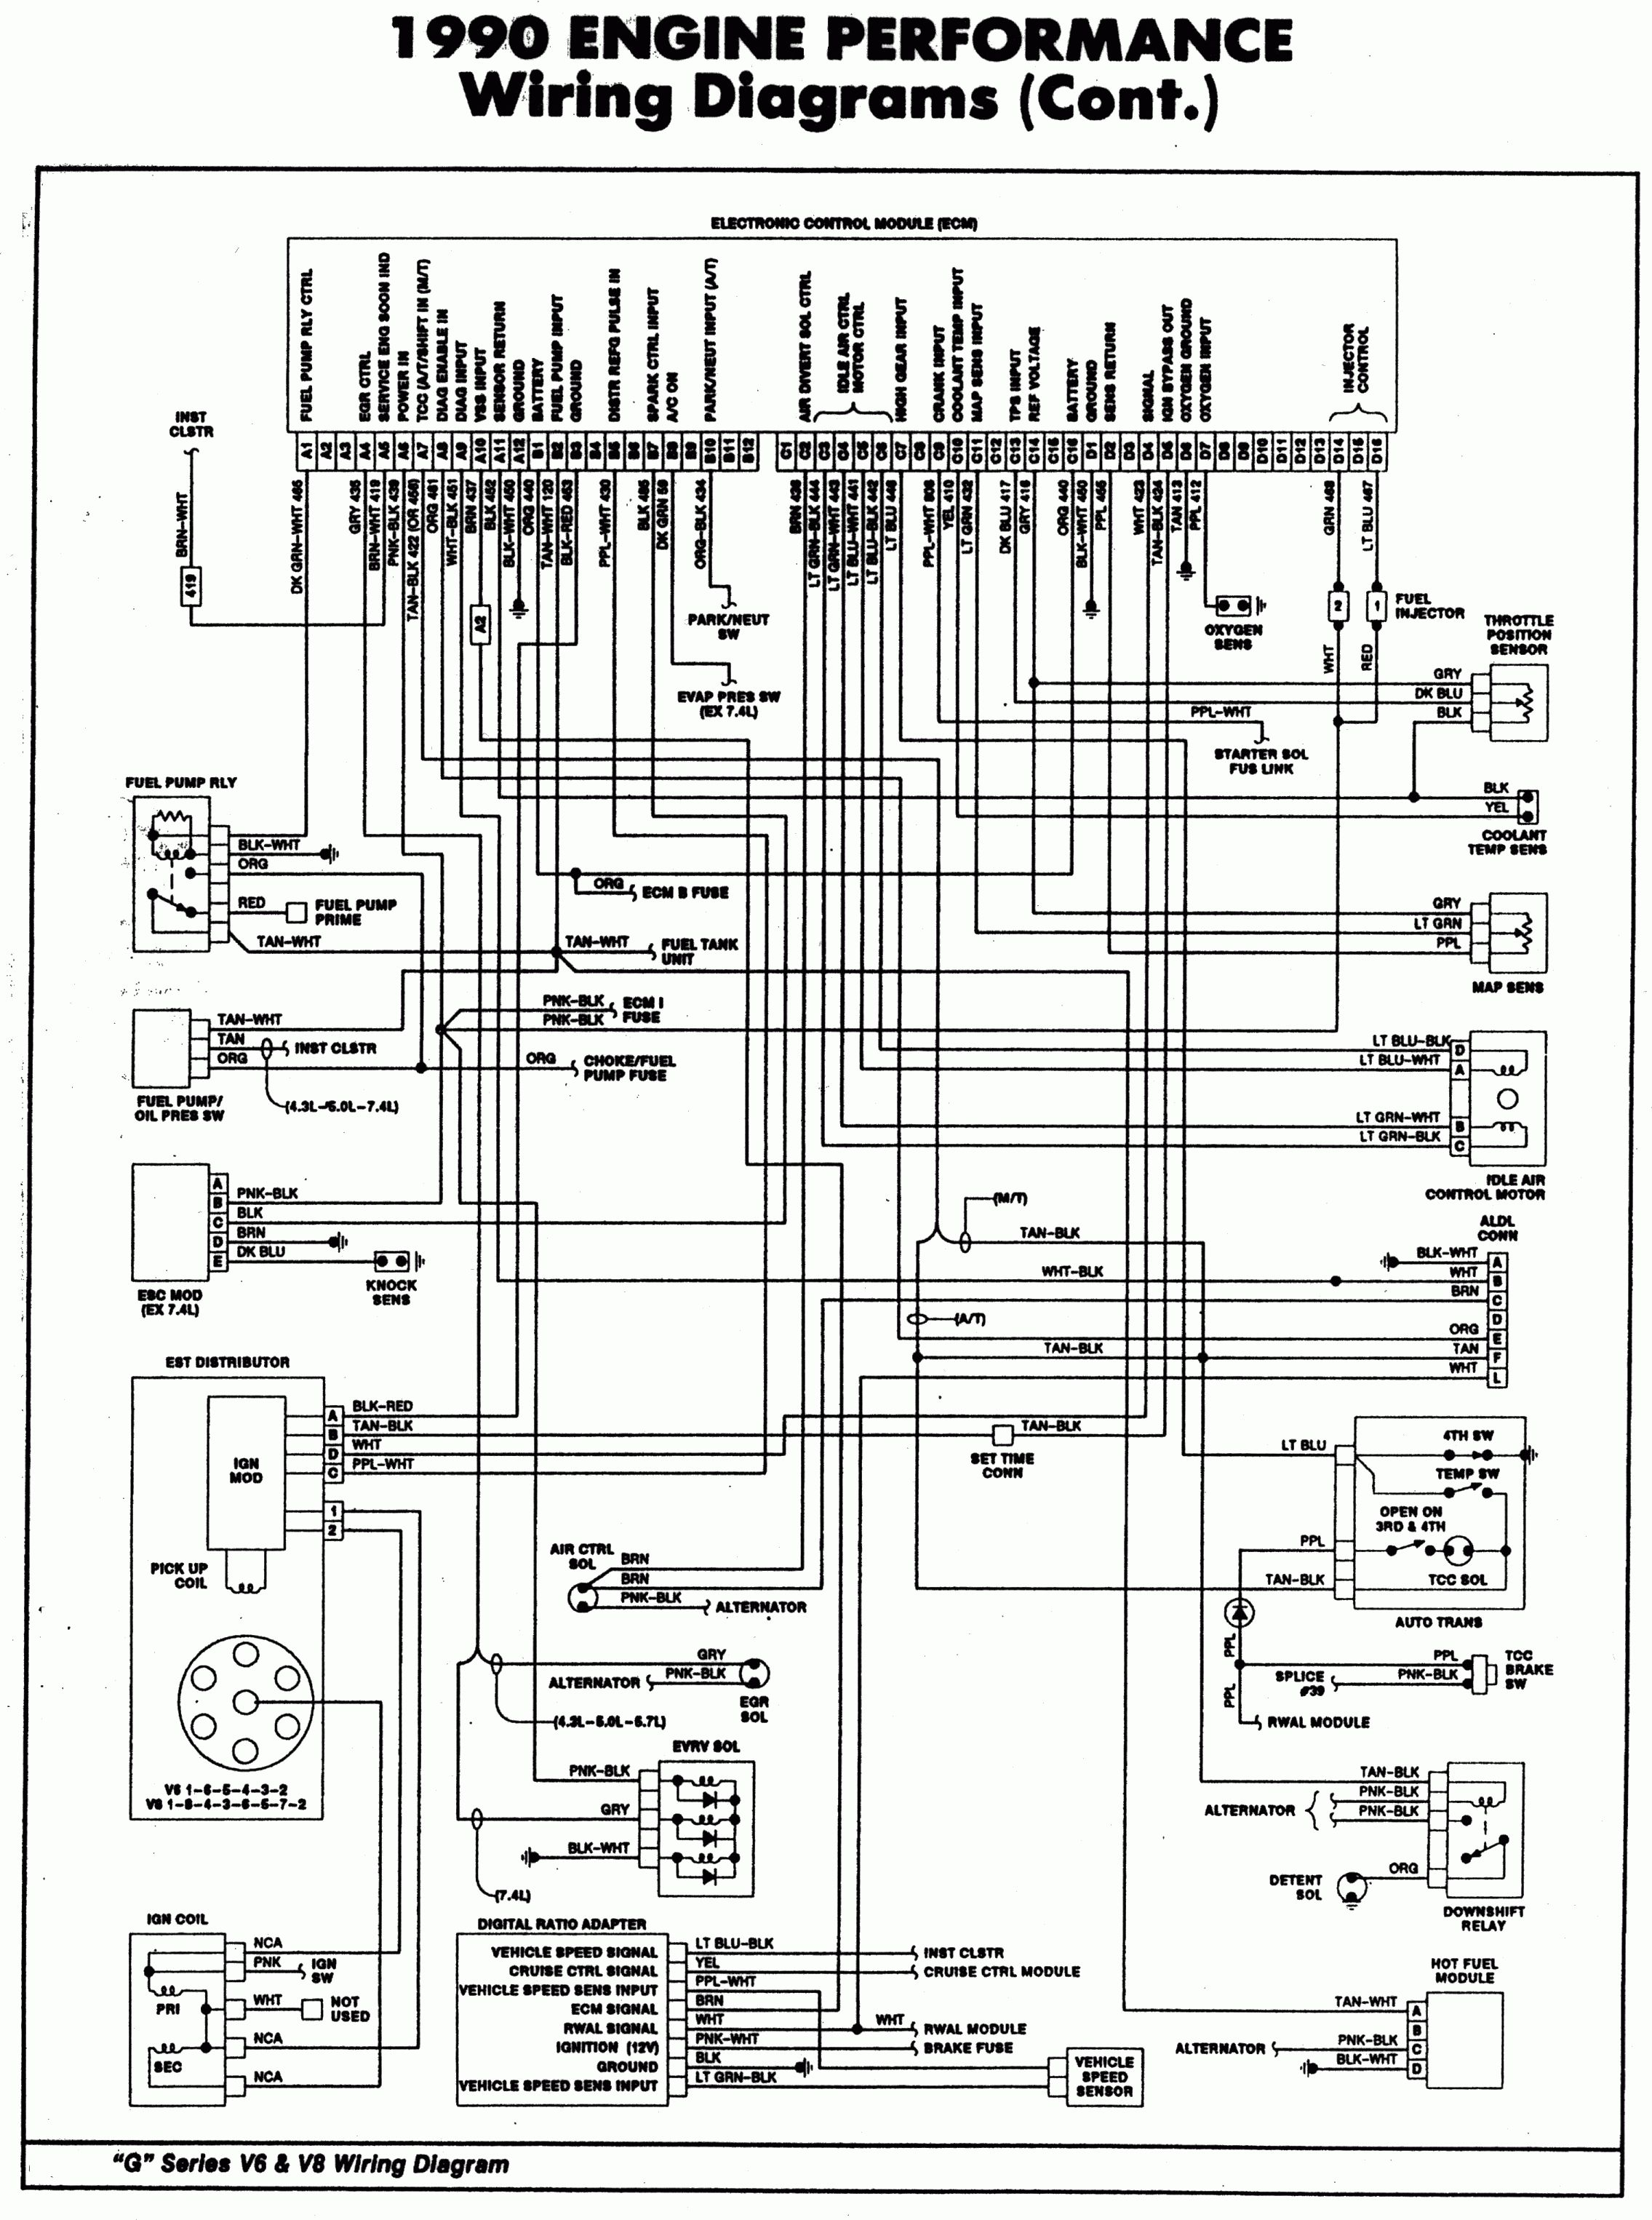 medium resolution of 1990 engine performance wiring diagram with control module and pertaining to throttle position sensor wiring diagram